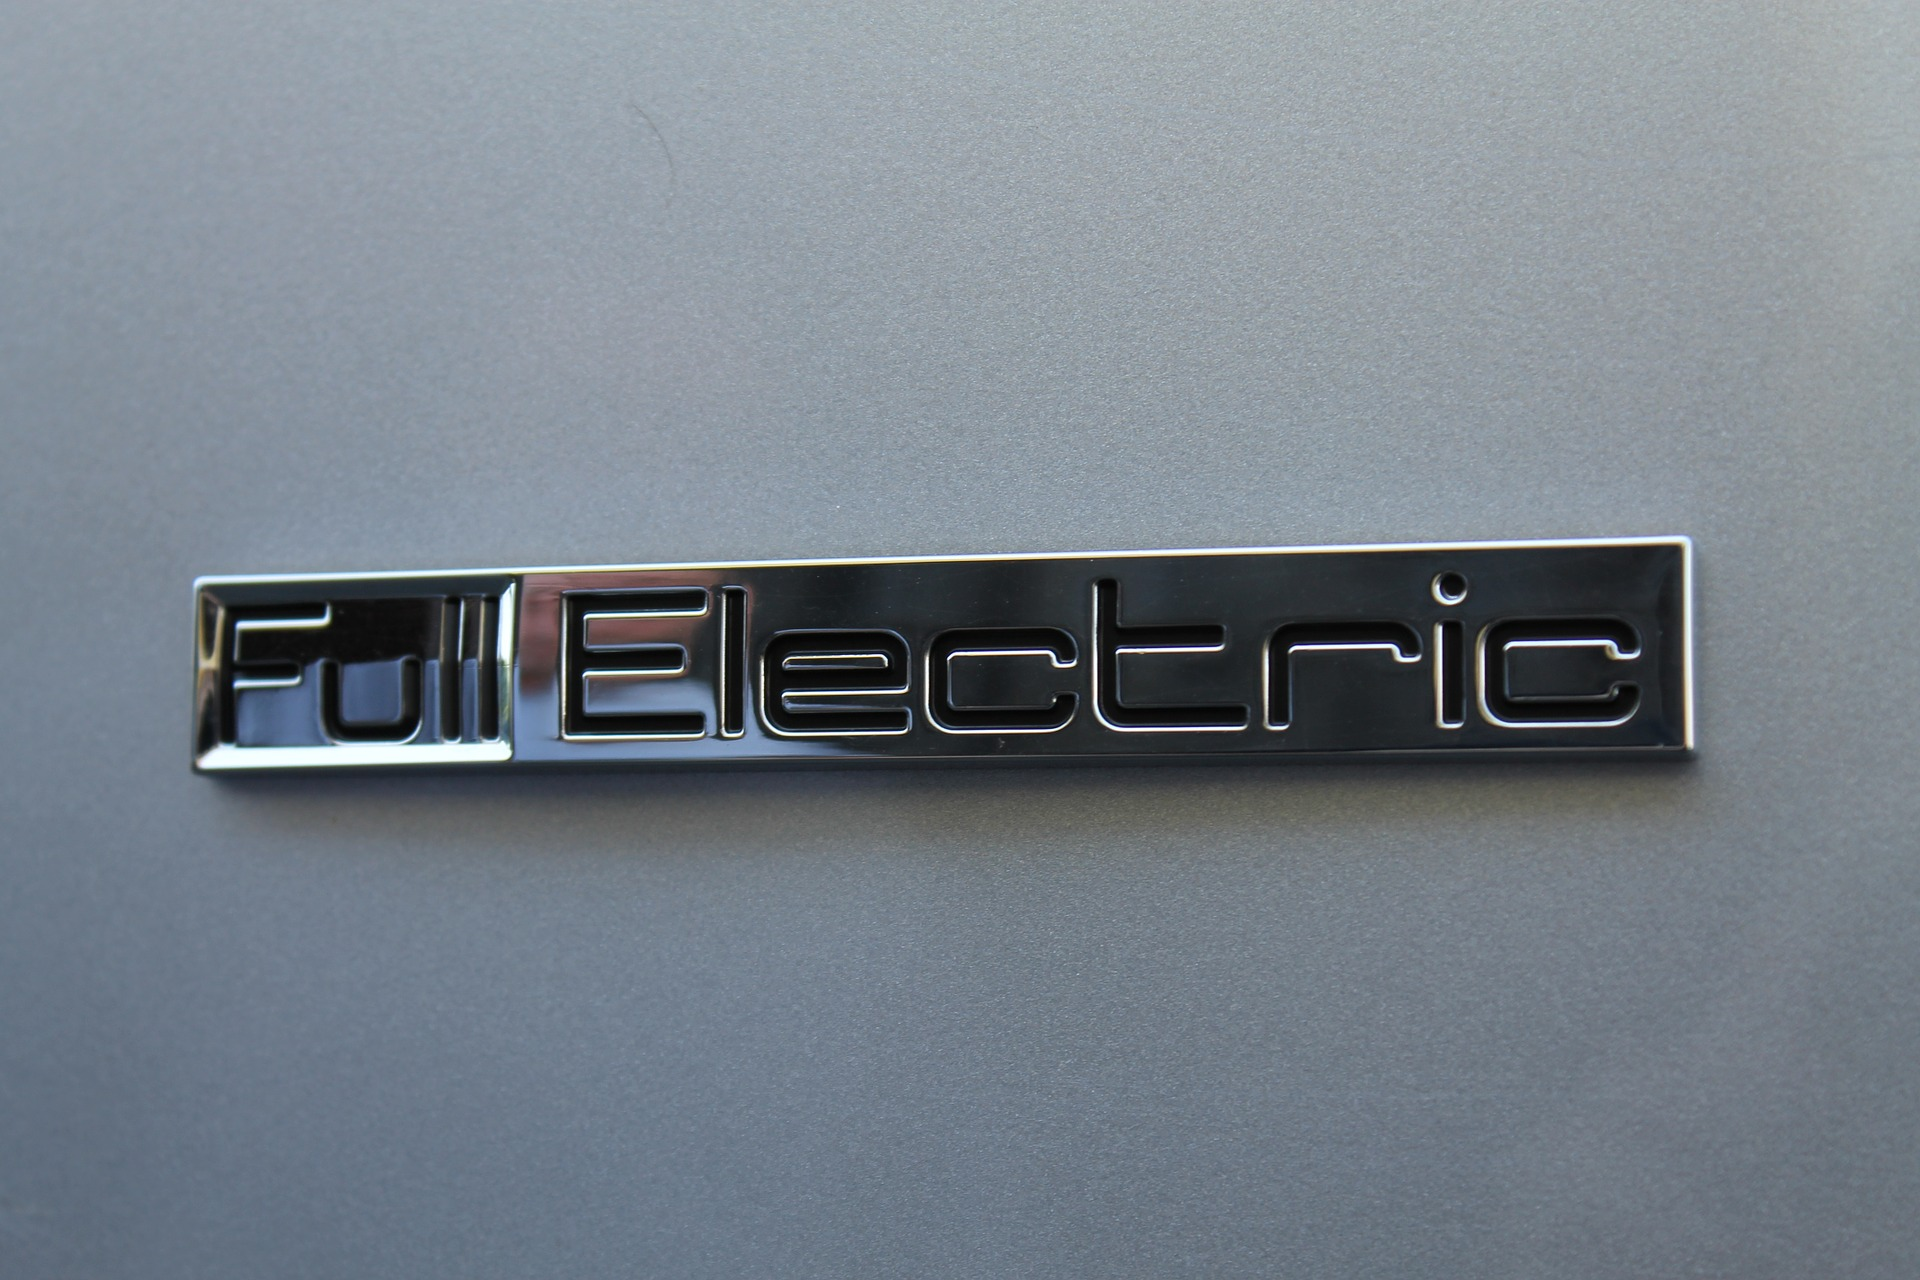 electric-car-629880_1920